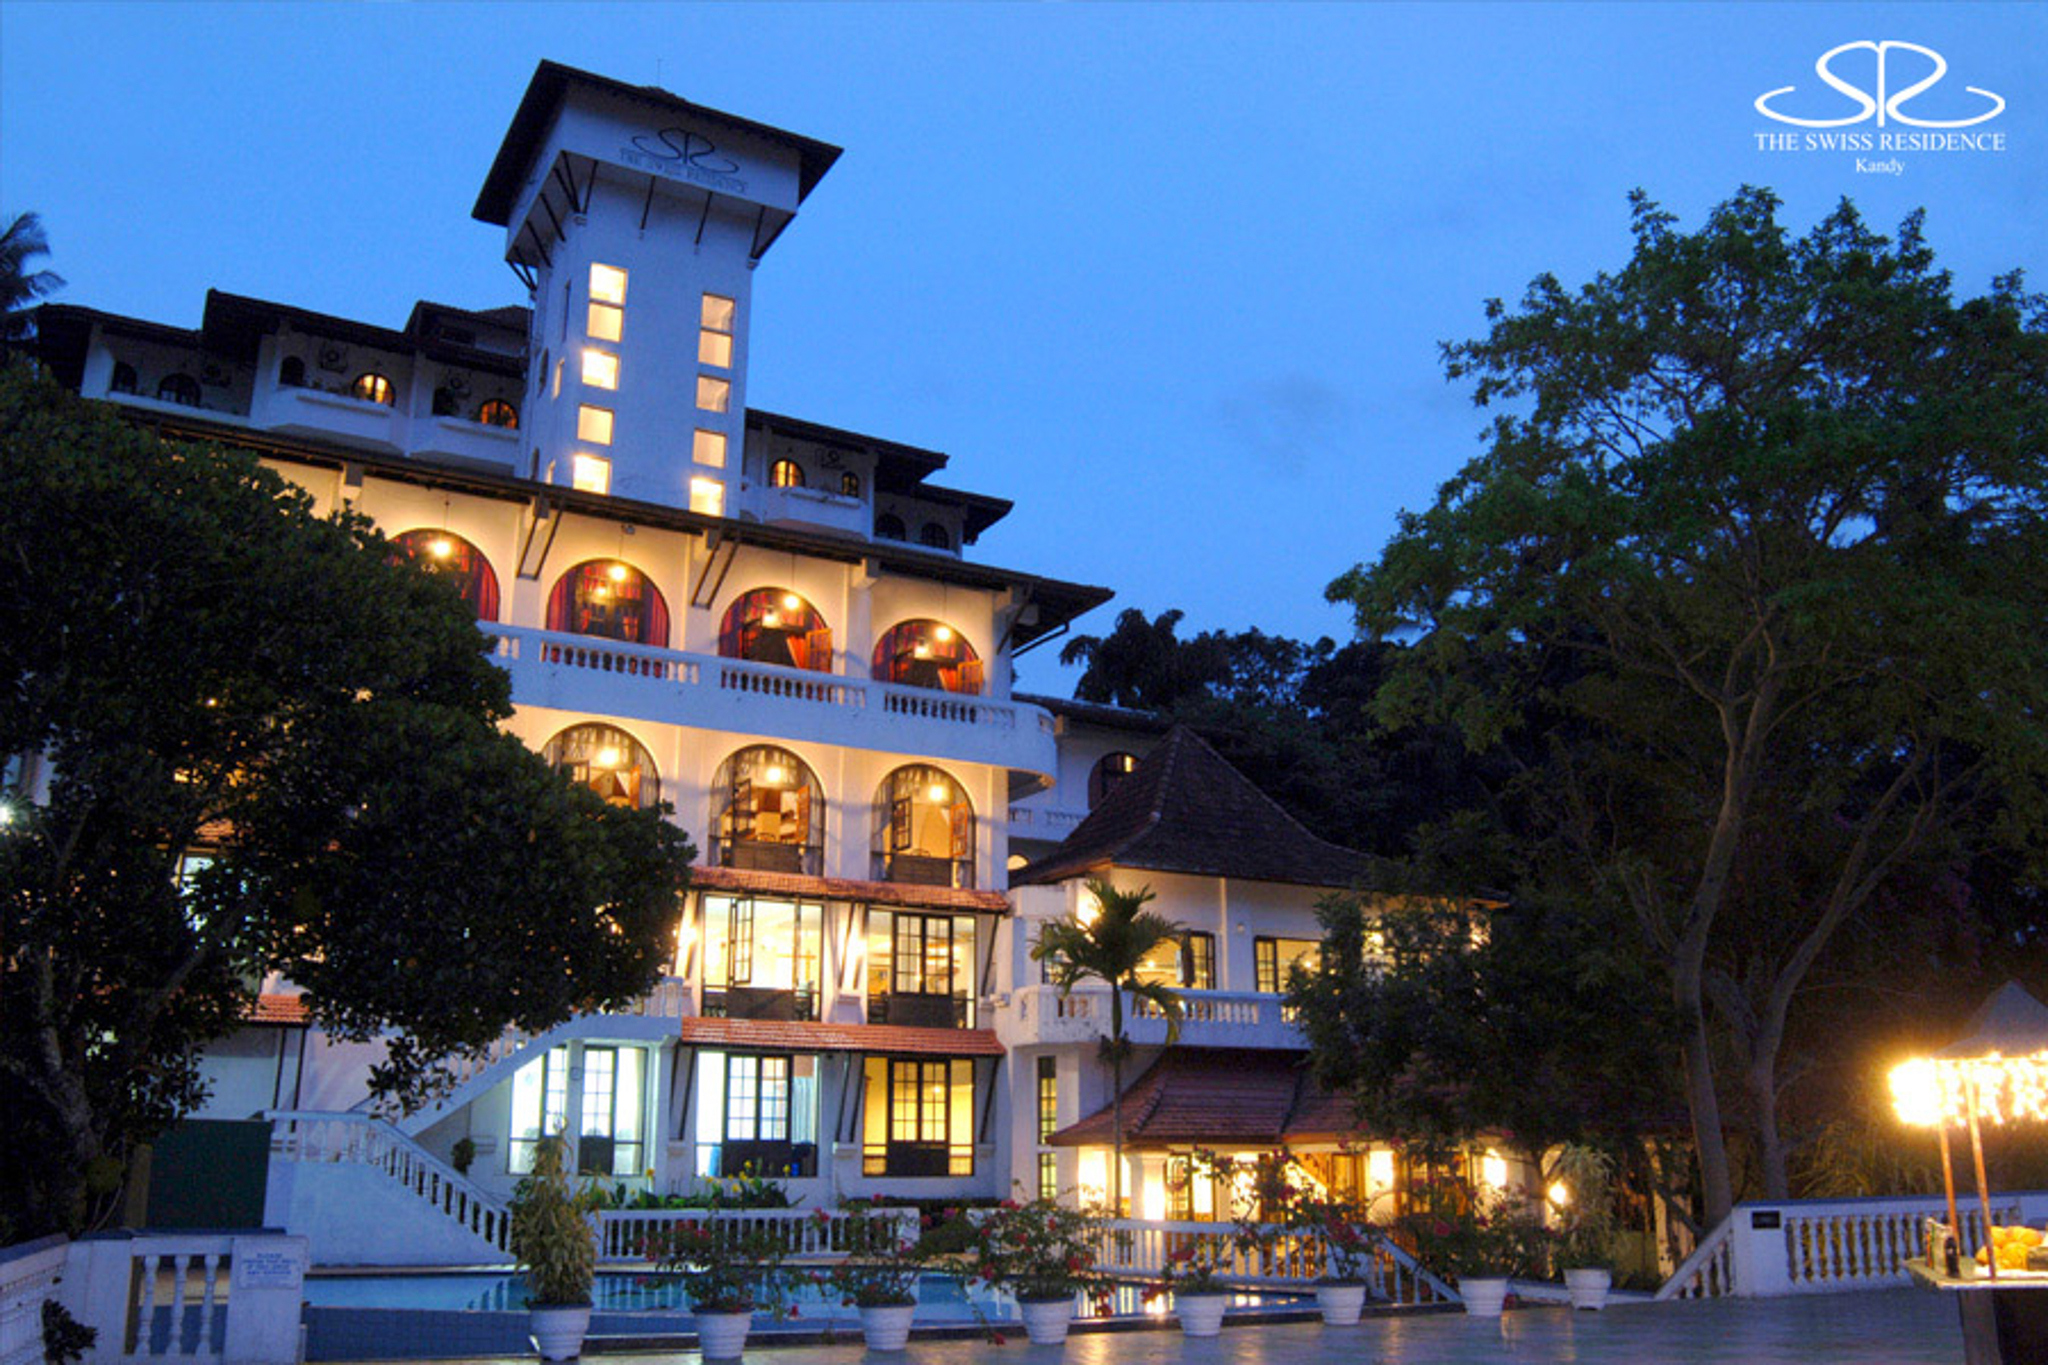 The Swiss Residence is a hotel in Kandy